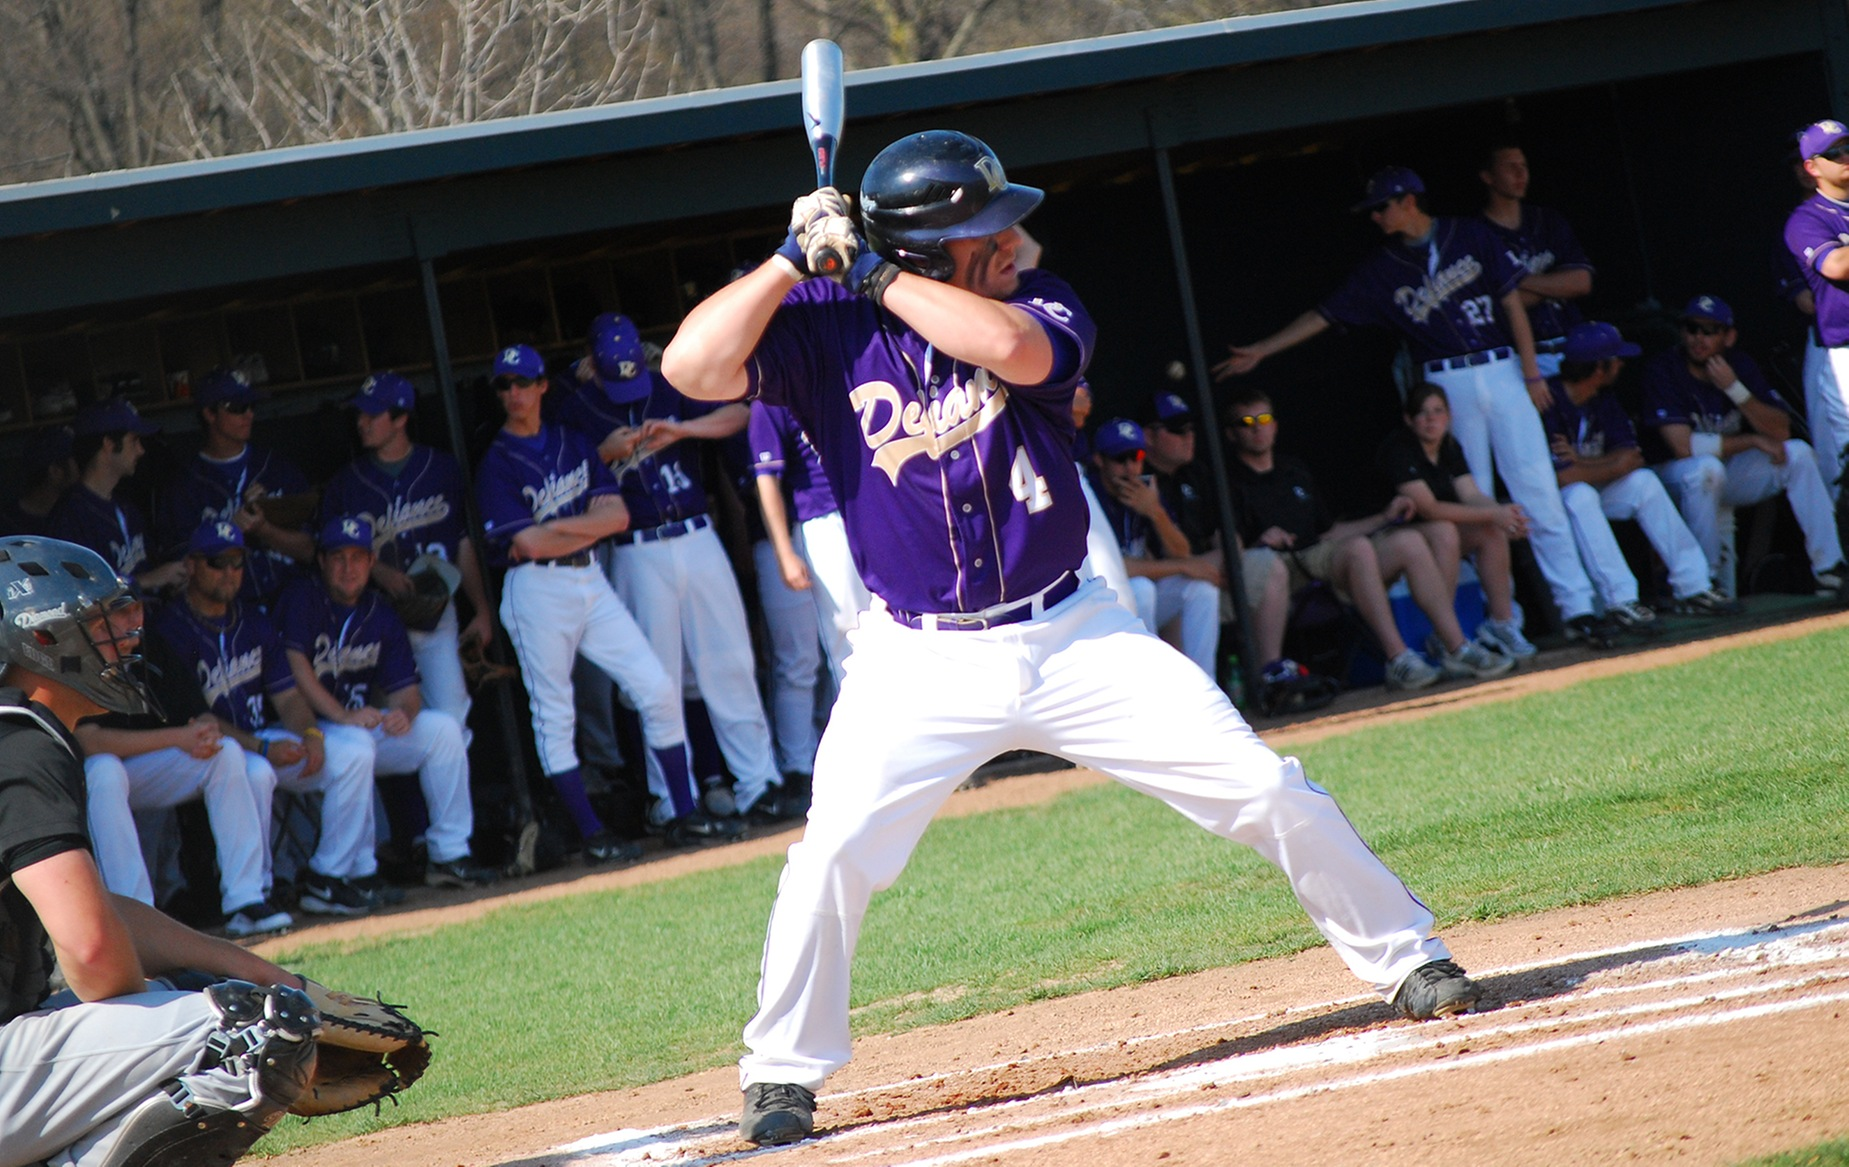 Pitro Ties DC's All-Time Hit Mark in Loss to No. 3 Heidelberg